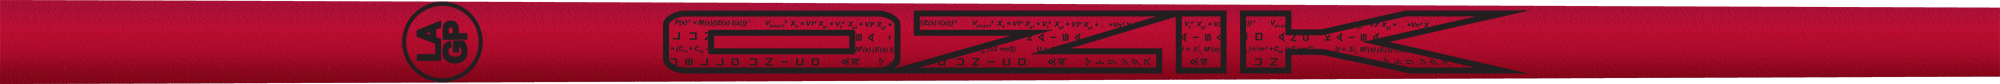 Ozik White Tie: Red Black Textured - Wood 50 R